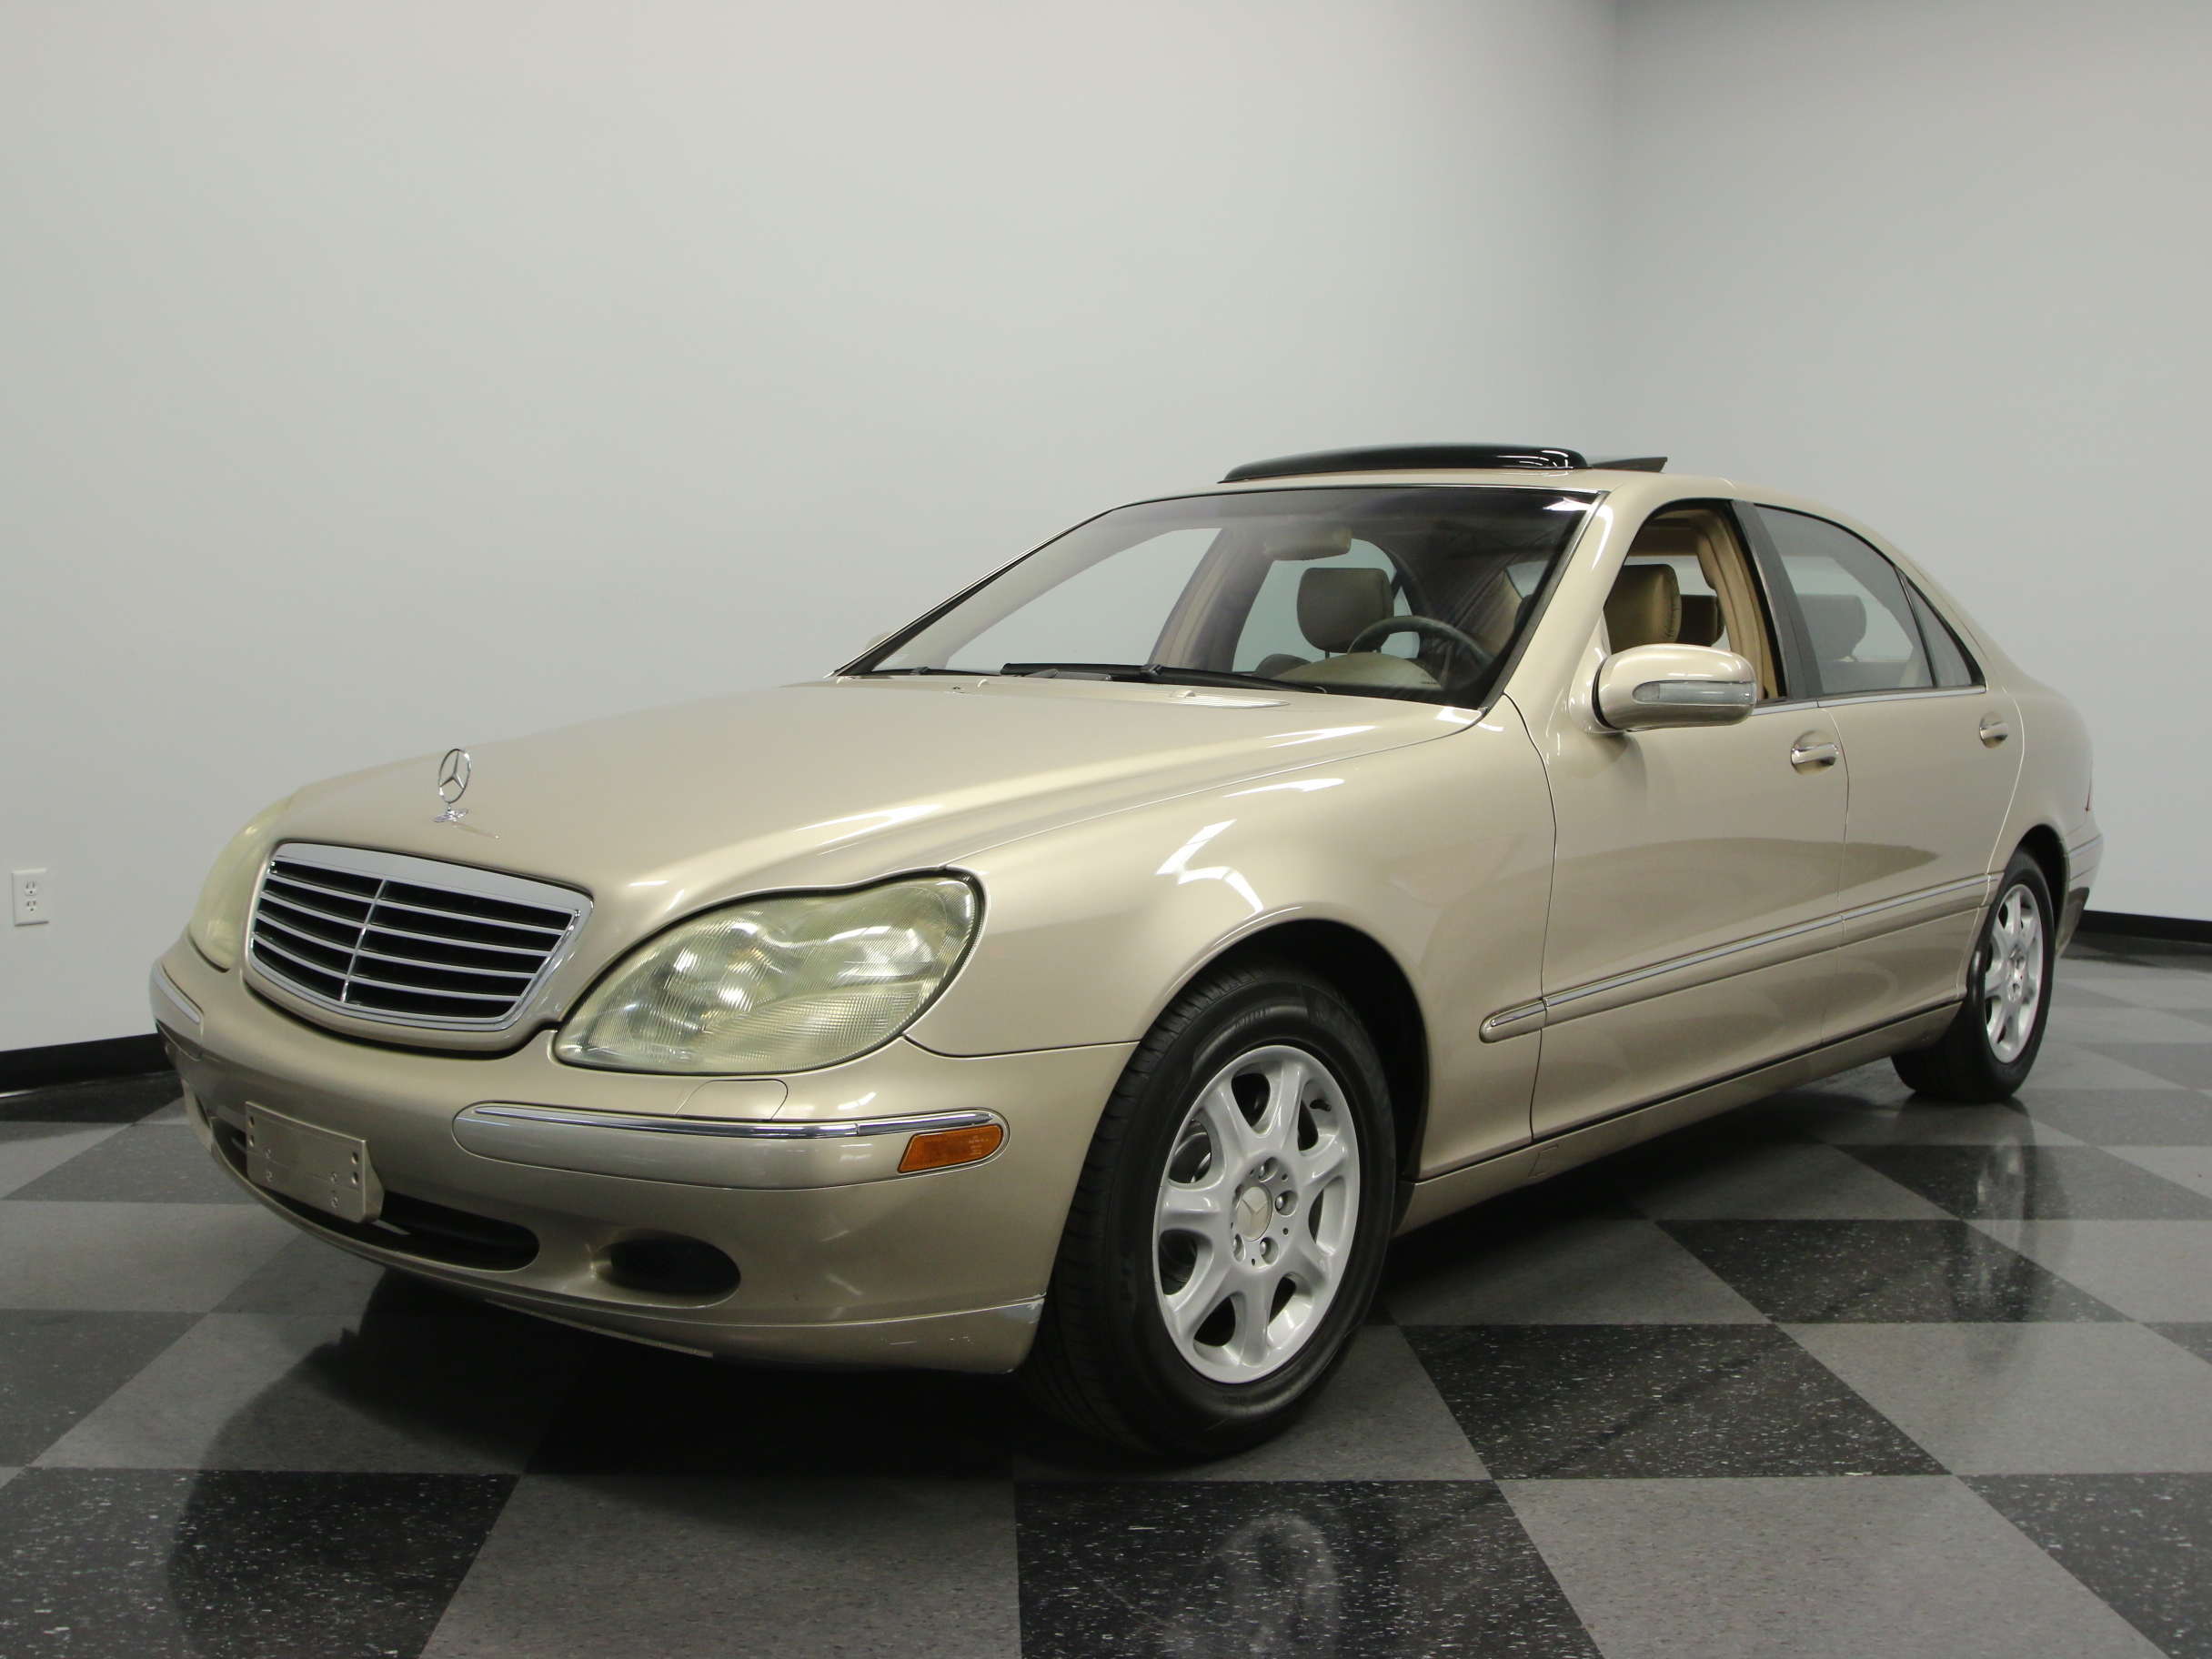 2001 mercedes benz s500 streetside classics the nation for 2001 mercedes benz s500 specs